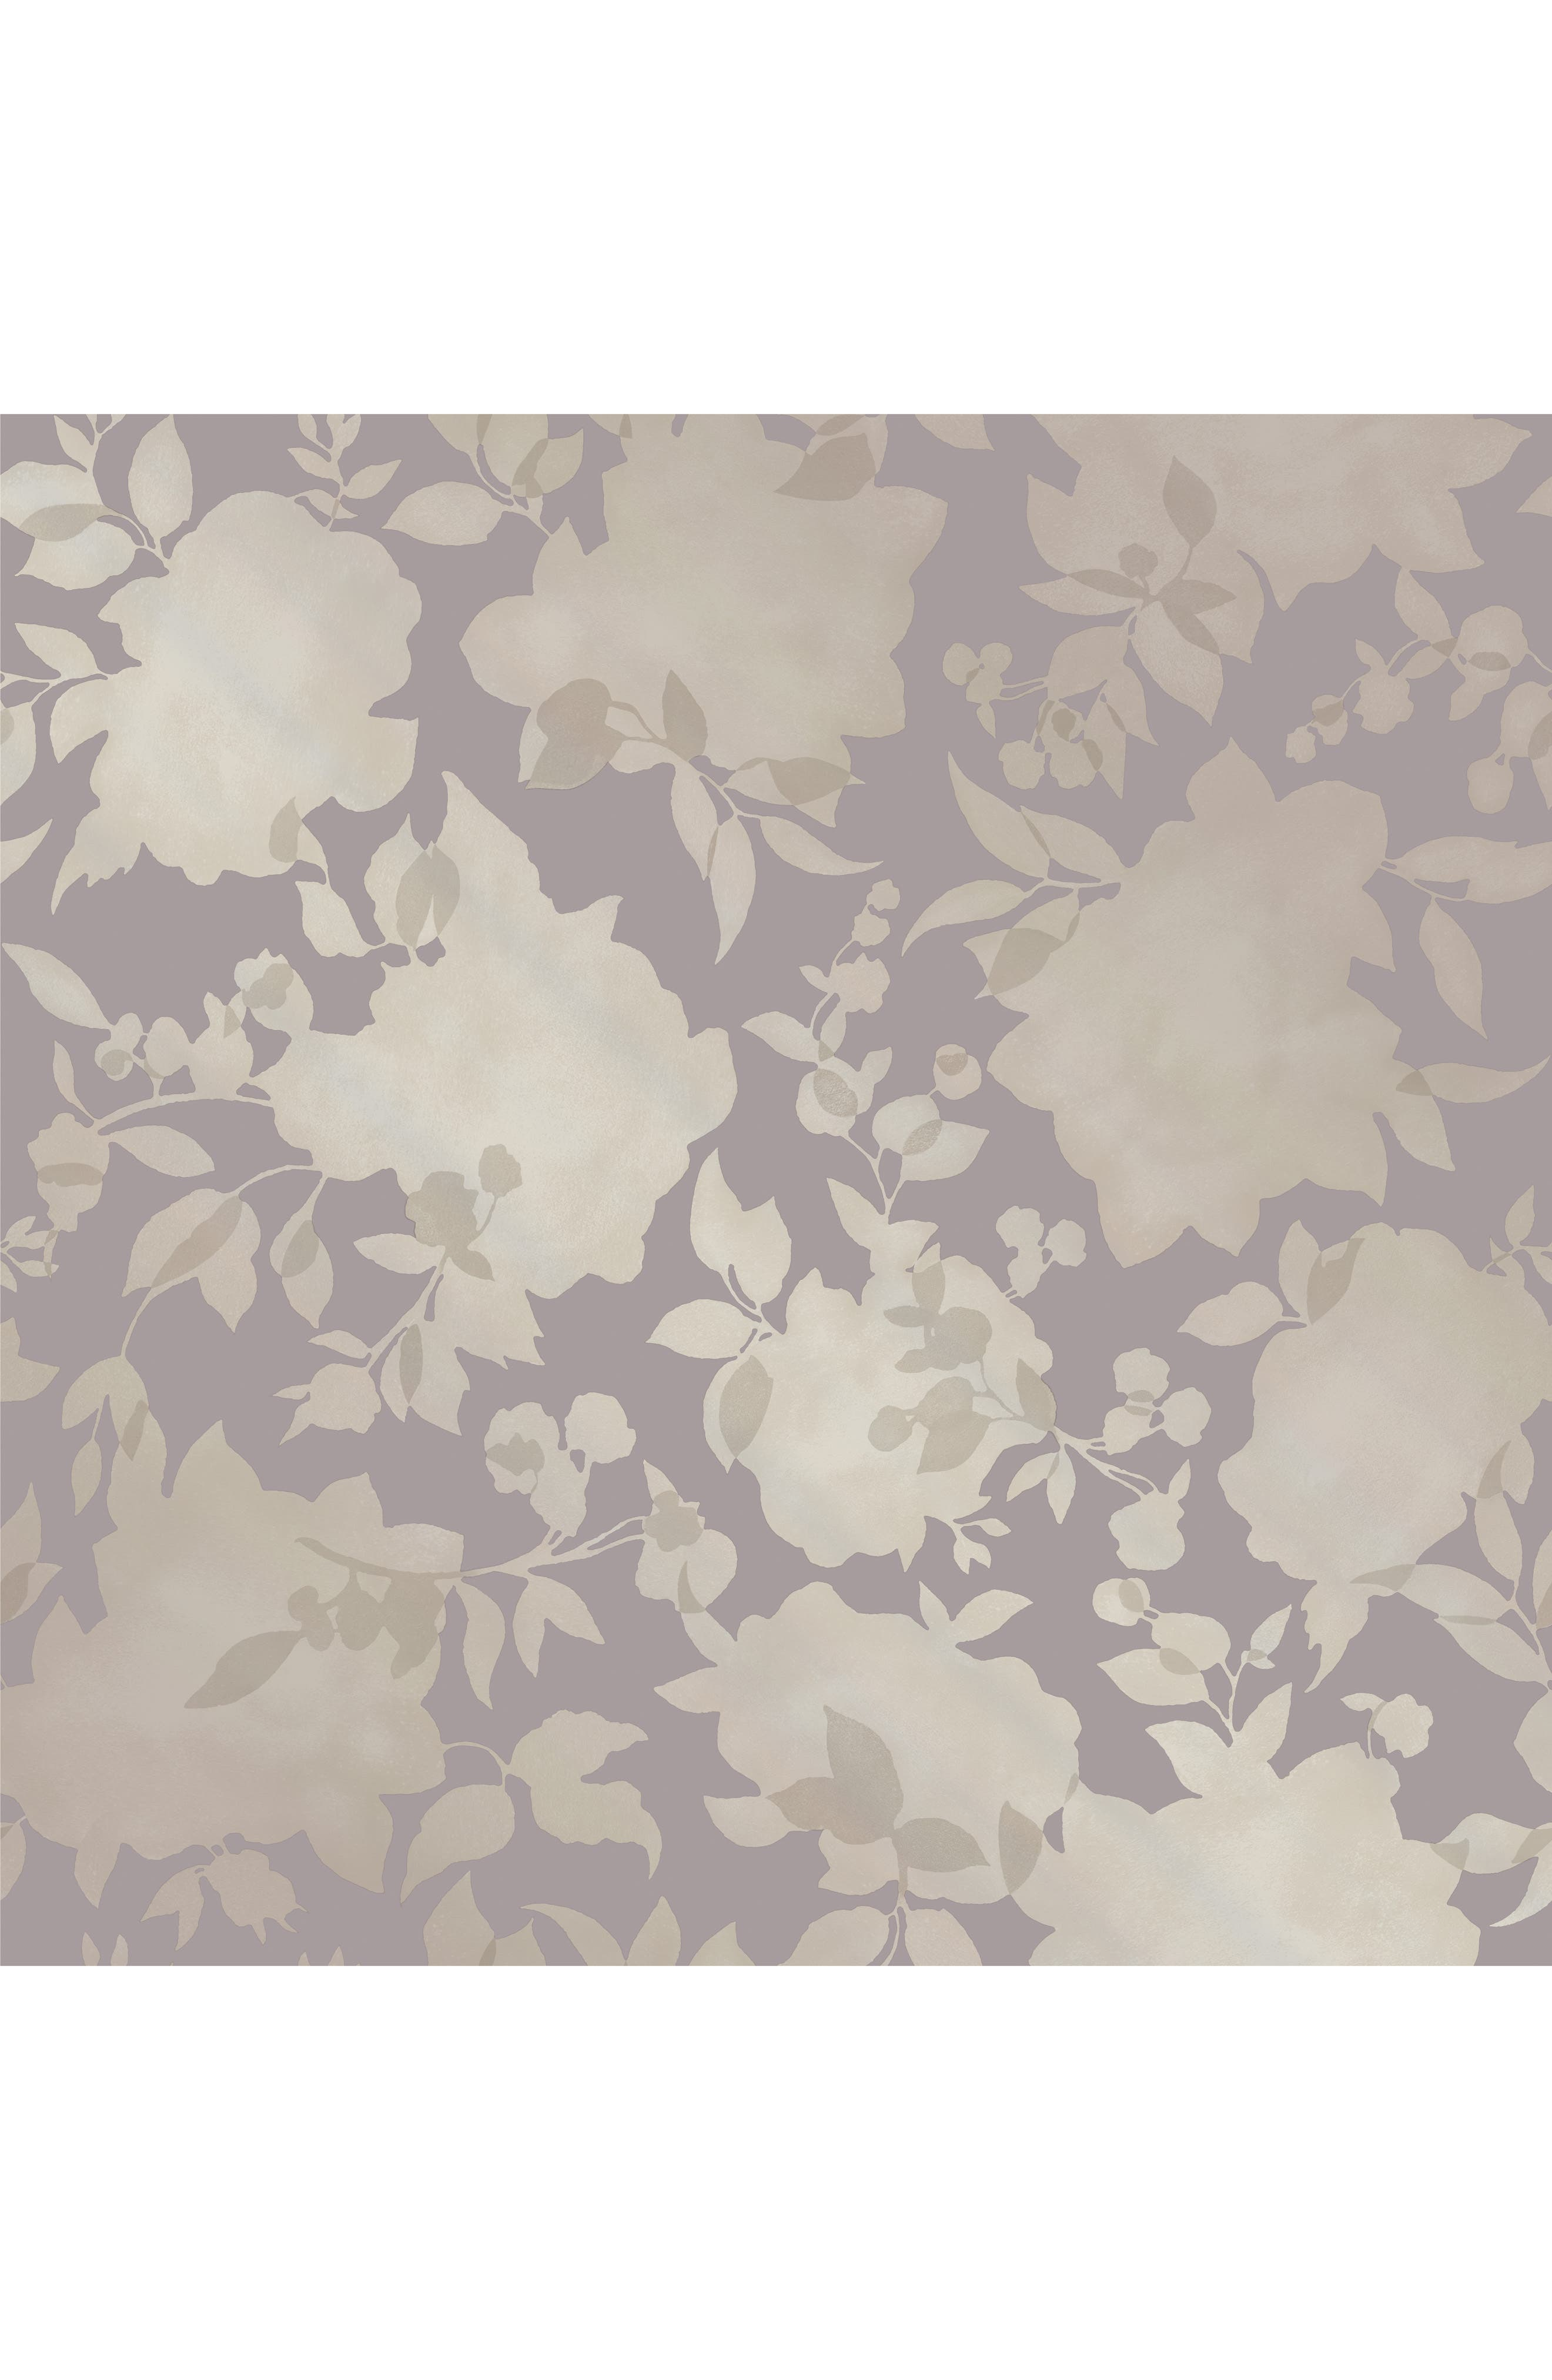 Silhouette Self-Adhesive Vinyl Wallpaper,                         Main,                         color, Dusted Lavendar